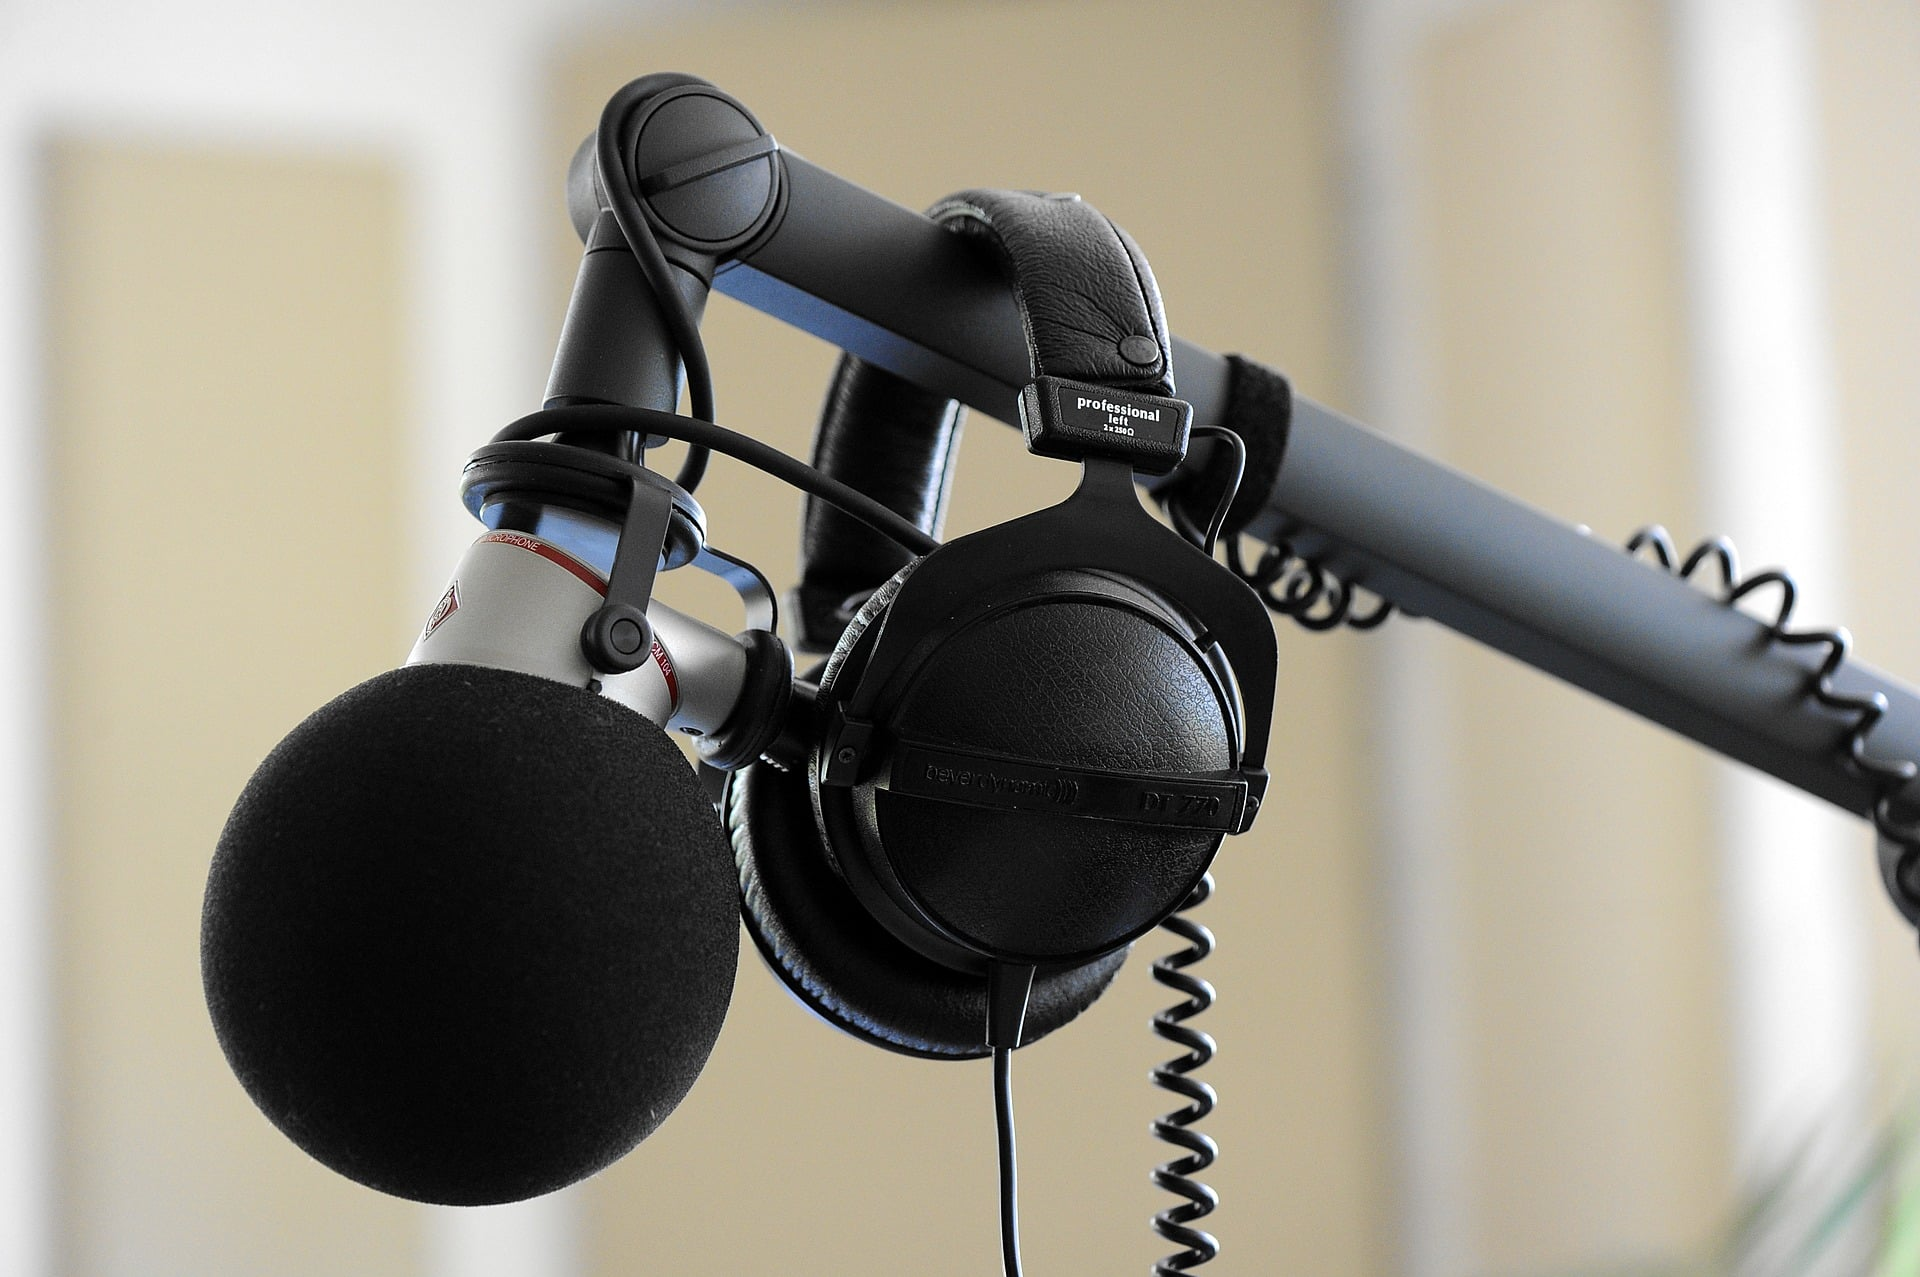 A microphone is the second thing you should invest in.